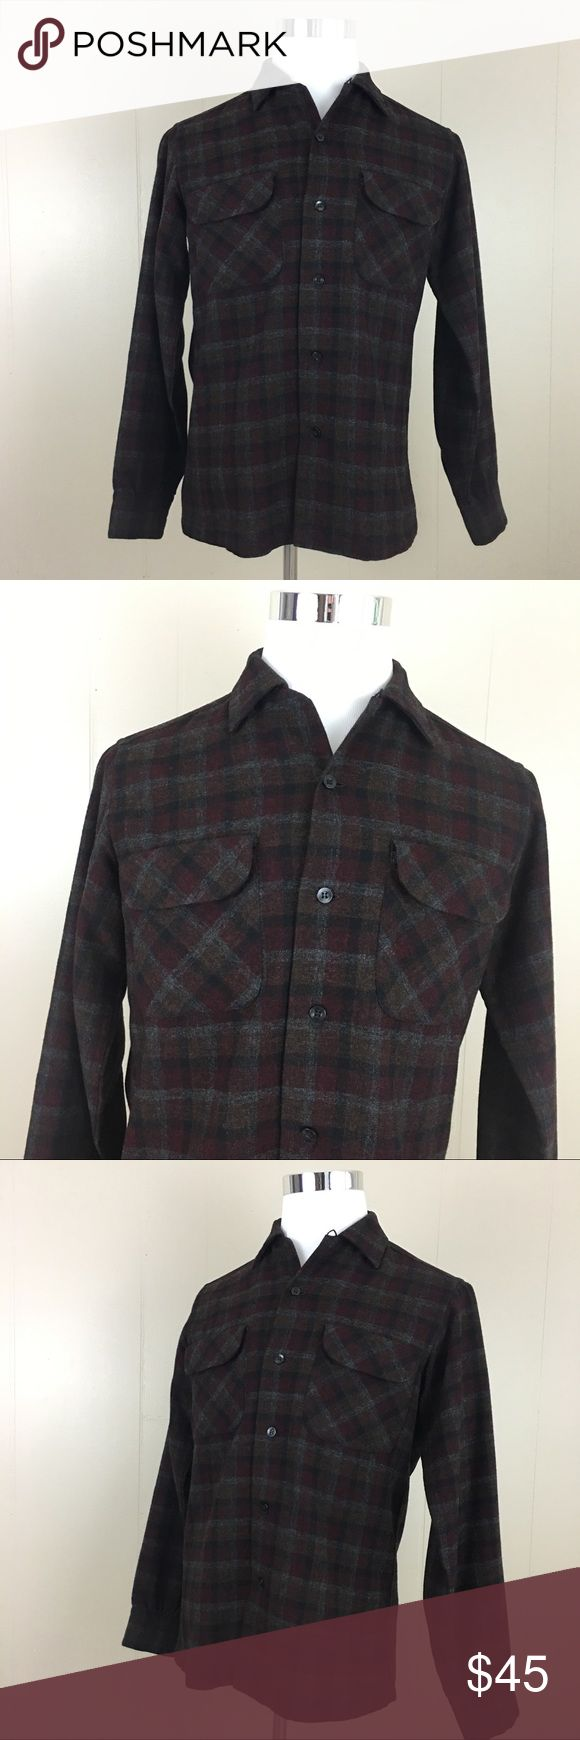 Pendleton Flannel 100% Virgin Wool Men's Shirt Brand: Pendleton  Condition: This item is in Good Pre-Owned Condition! There are NO Major Flaws with this item, and is free and clear of any Noticeable Stains, Rips, Tears or Pulls of fabric. Overall This Piece Looks Great and you will love it at a fraction of the price!  Material: 100% Virgin Wool Size: Small 💥Top Rated Seller 💥Top 10% Seller 💥Top 10% Sharer 💥Posh Mentor 💥Super Fast Shipping Pendleton Shirts Casual Button Down Shirts